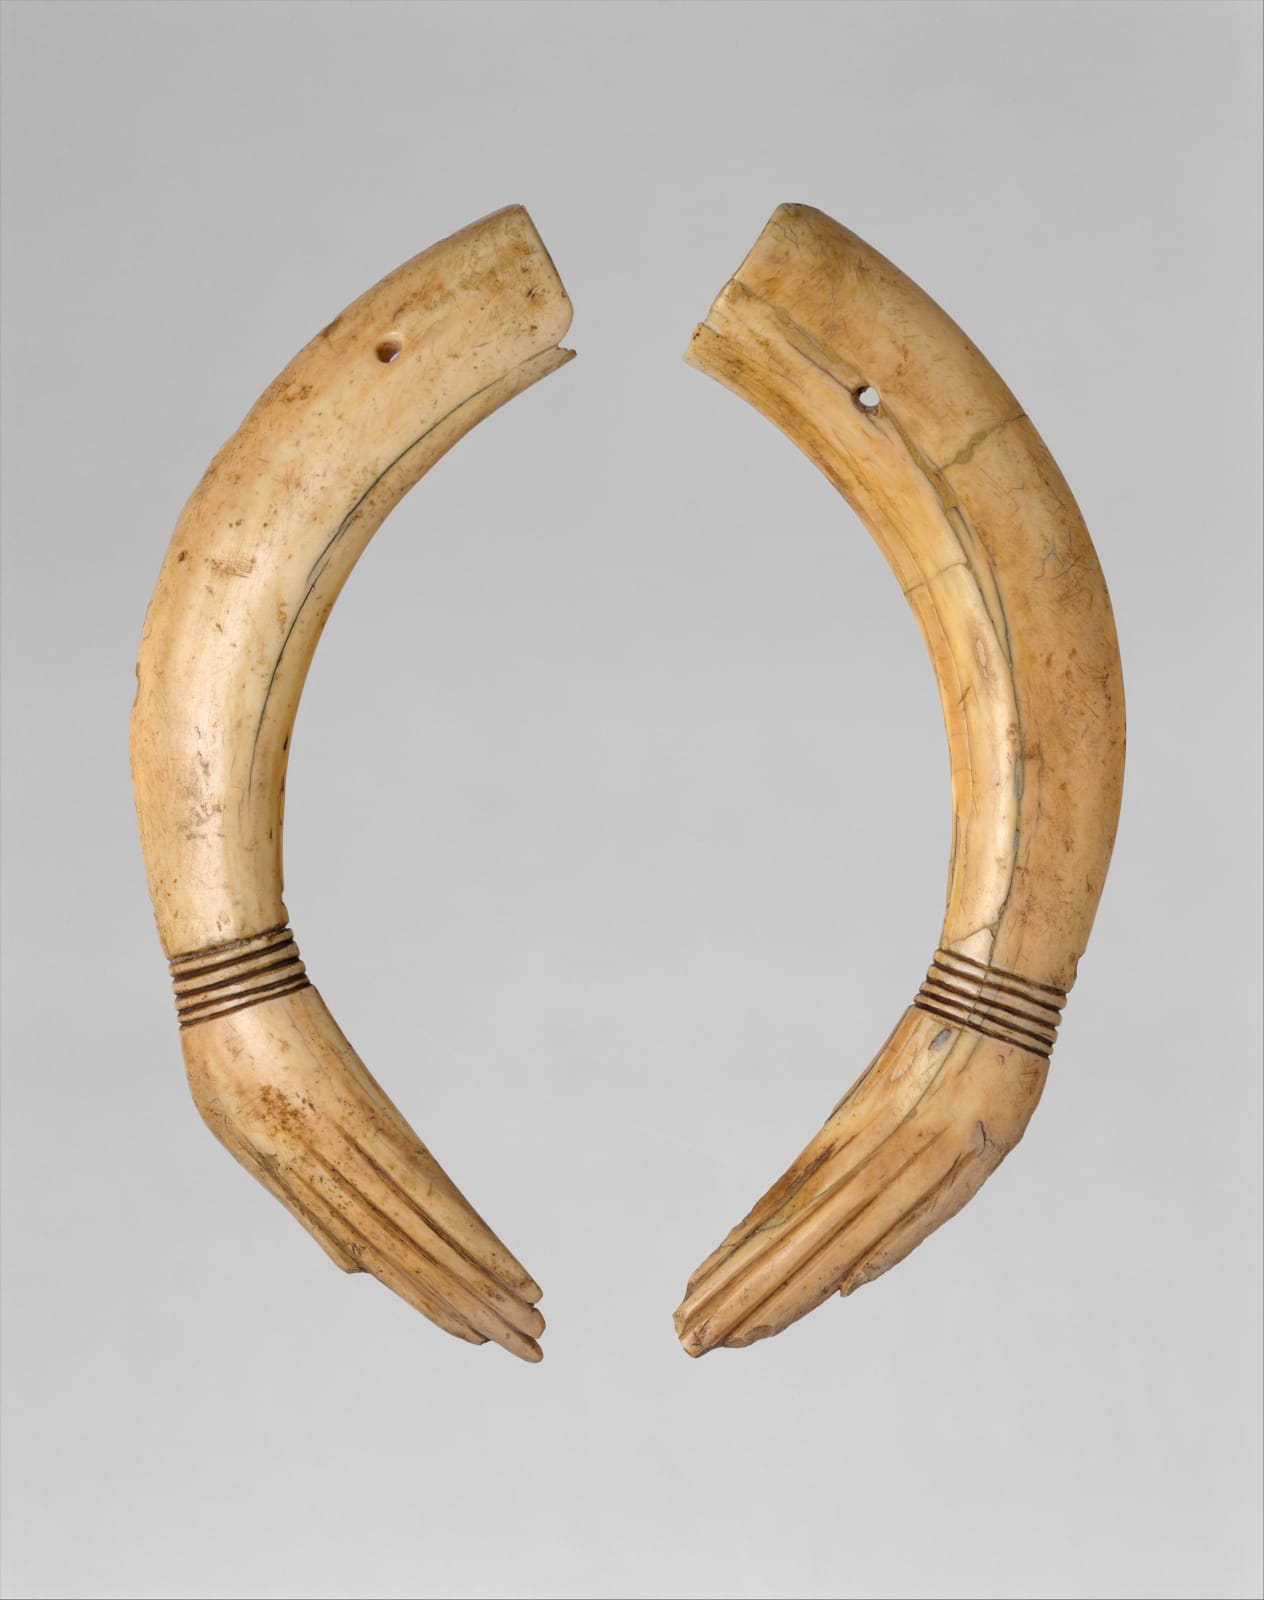 Pair of Clappers, ca. 1353–1336 B.C. Courtesy of The Metropolitan Museum of Art, New York.